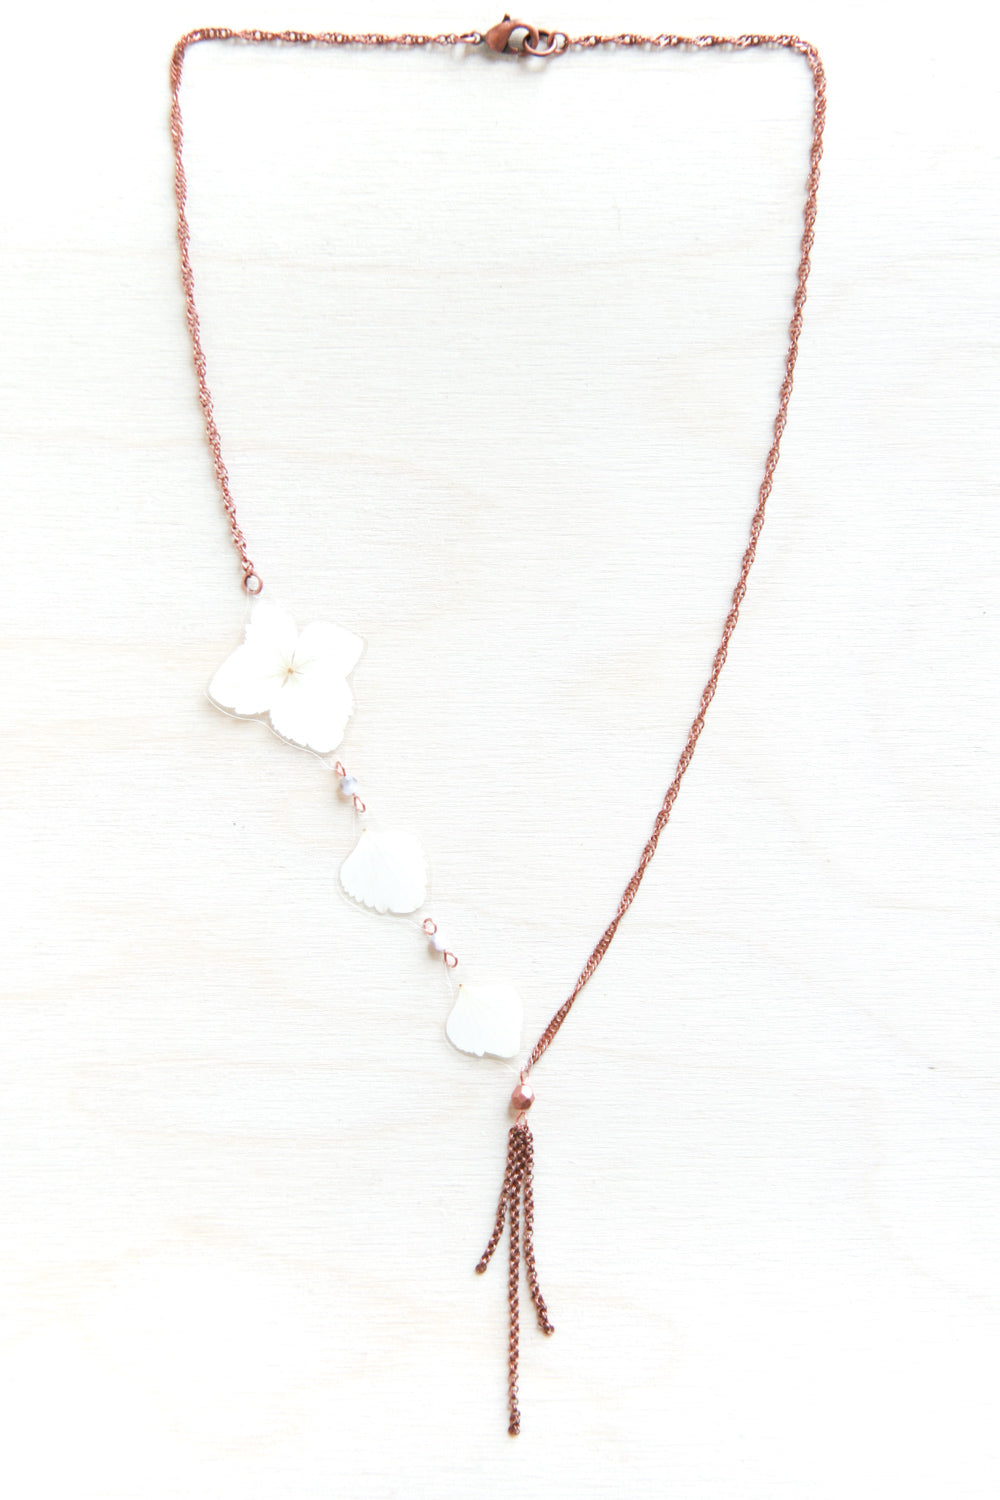 White Hydrangea Flower Necklace with Copper Beads & Dangles